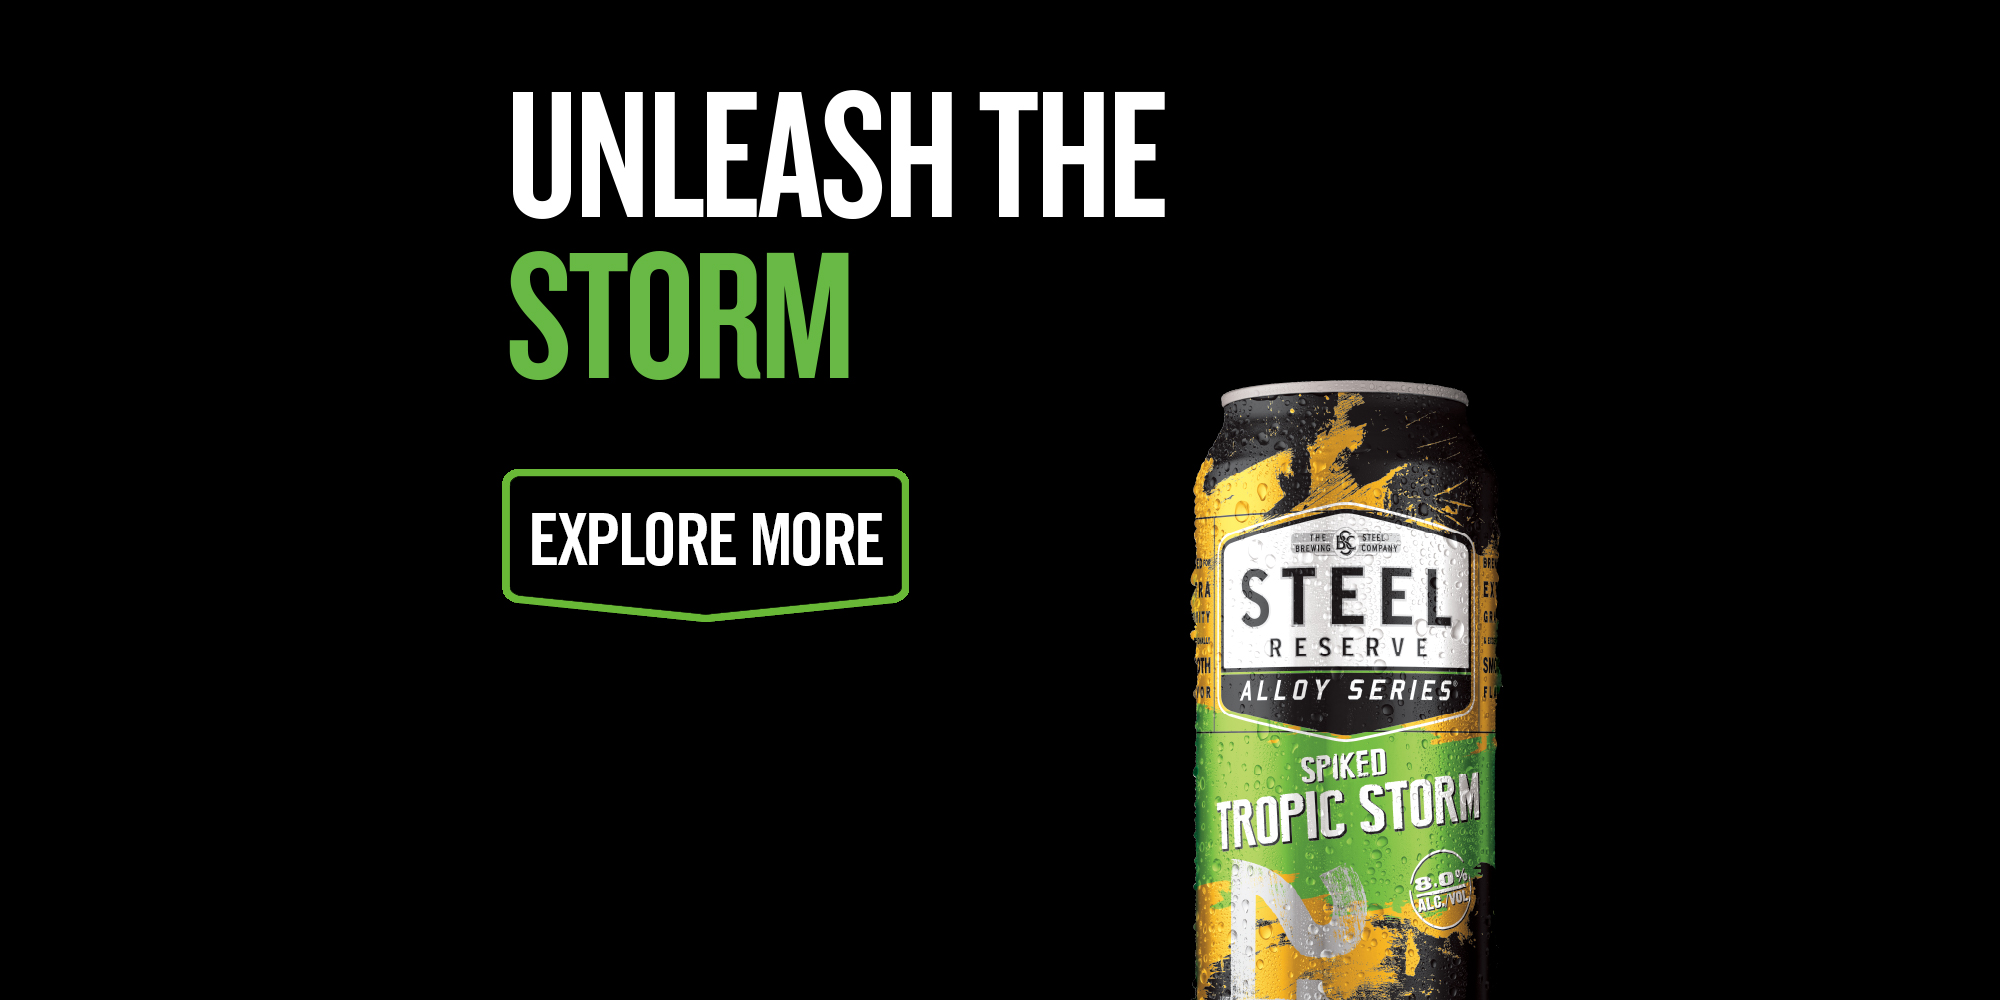 Spiked Tropic Storm